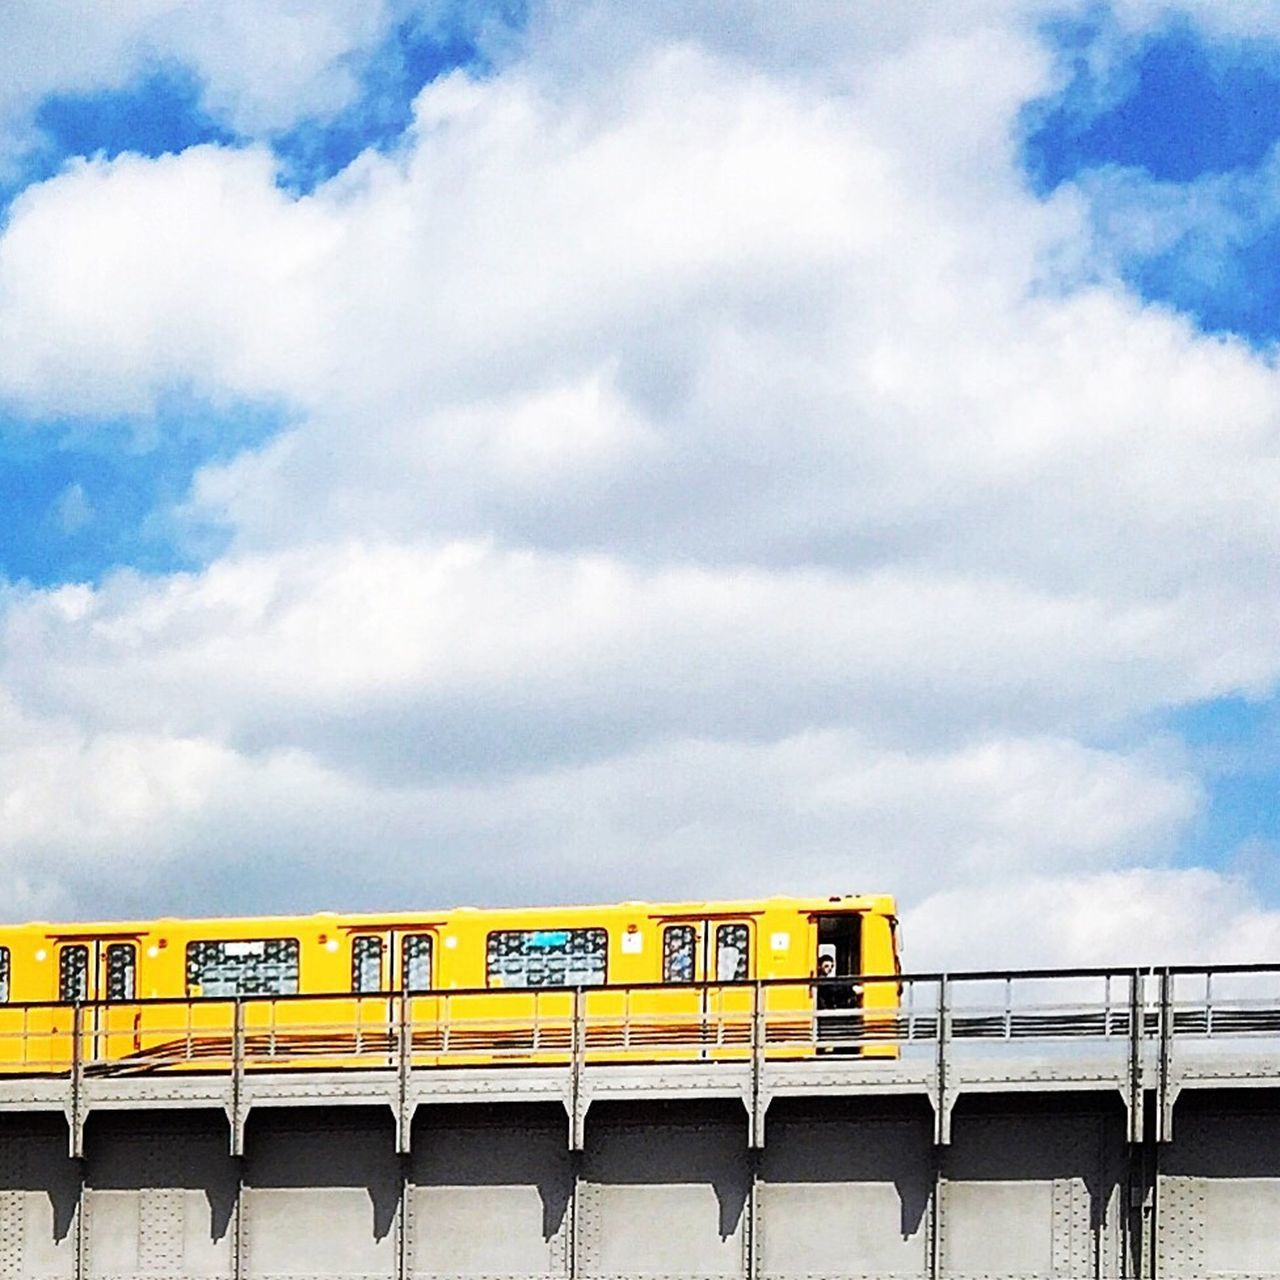 cloud - sky, sky, transportation, rail transportation, train, train - vehicle, public transportation, mode of transportation, architecture, no people, nature, built structure, day, passenger train, bridge, yellow, outdoors, connection, bridge - man made structure, land vehicle, railroad car